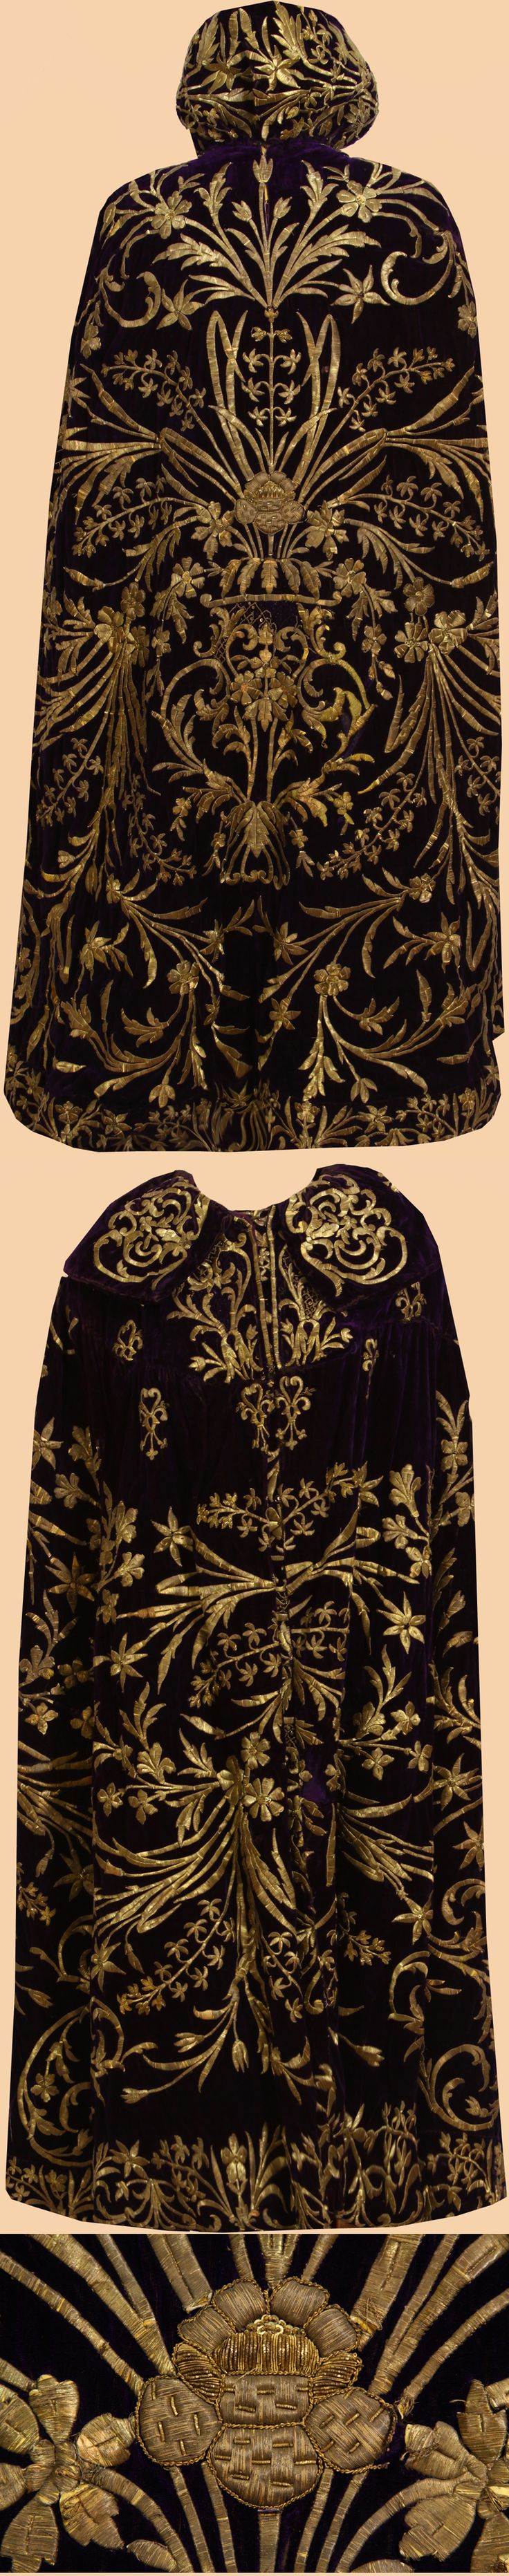 Ottoman Turkish Woman's Kaftan worn at Court, circa 1840 in the 'Shah's Pleasure' pattern.